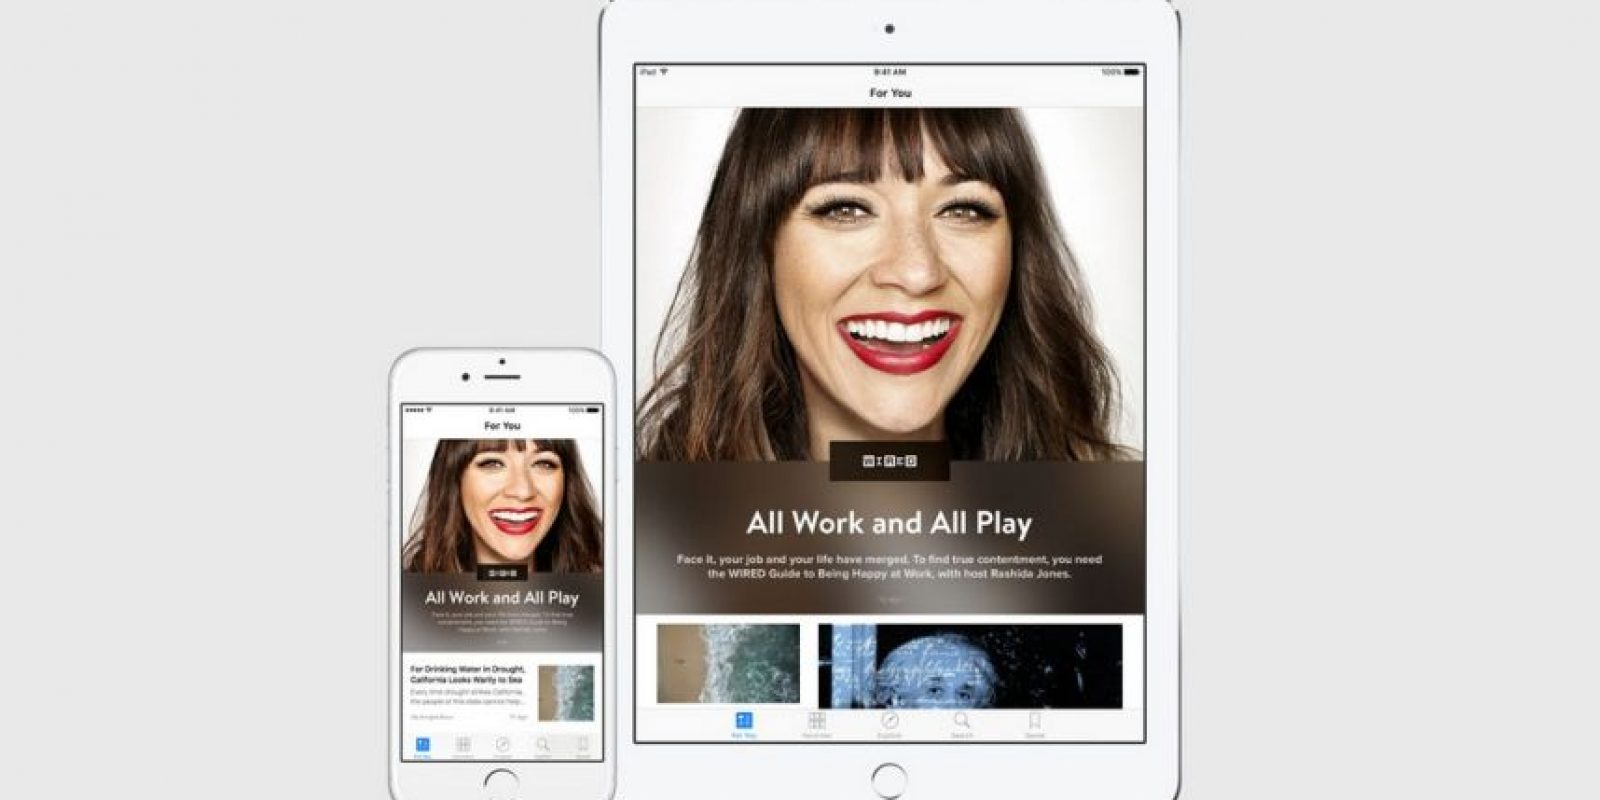 Tendrá aplicación para iPhone y iPad. Foto: Apple